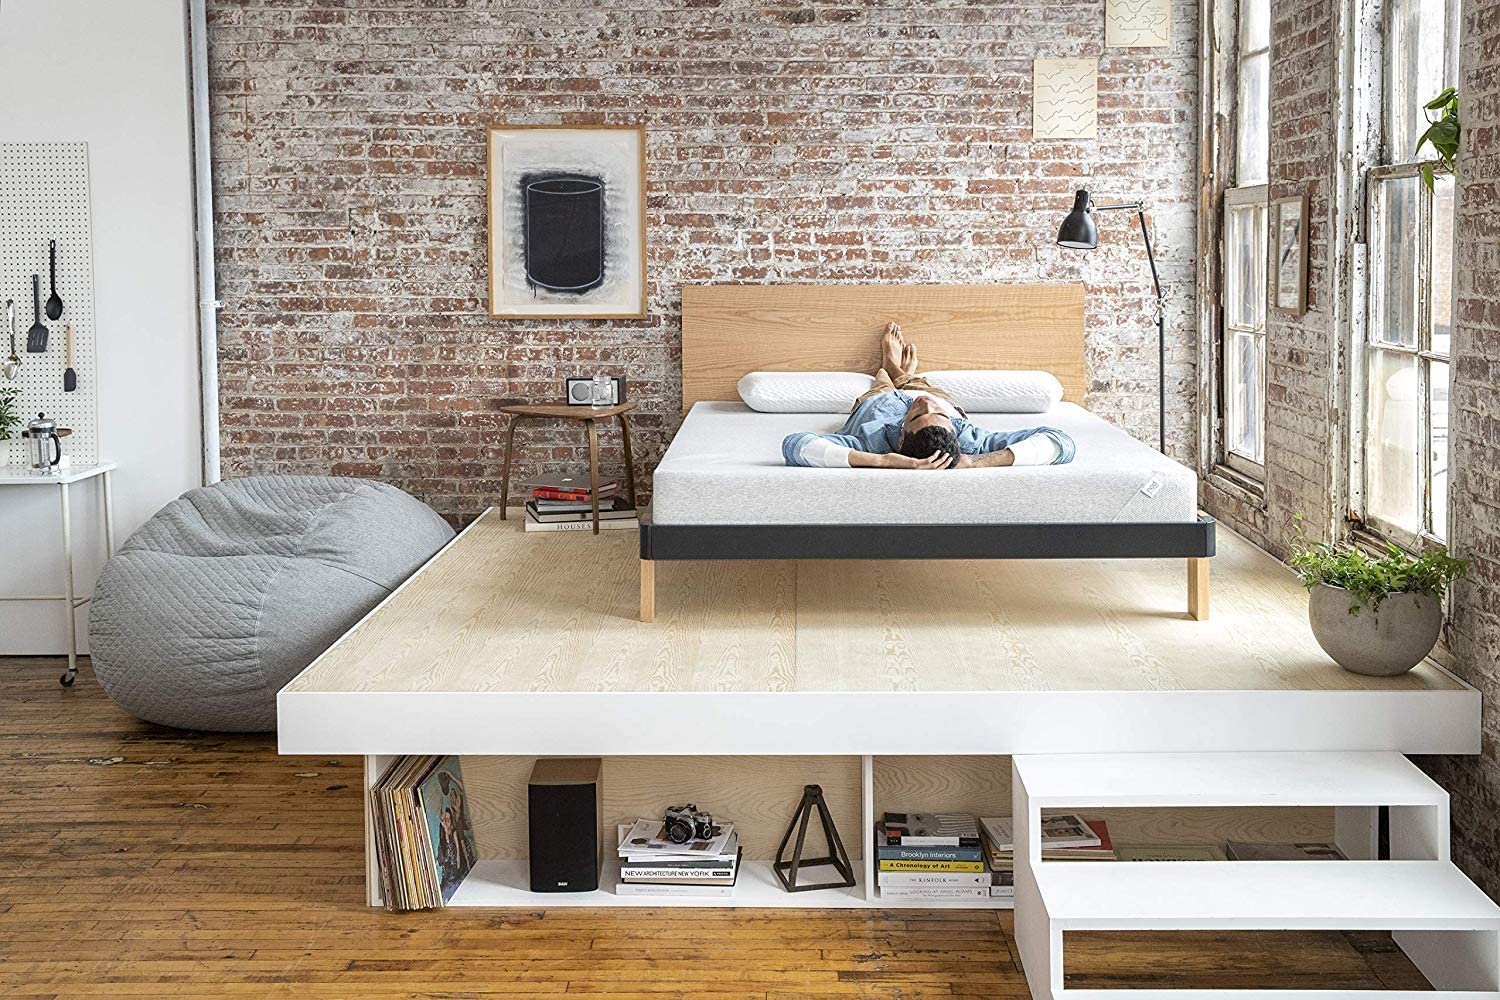 Nod by Tuft Needle Twin Mattress, Amazon-Exclusive Bed in a Box, Responsive Foam, Sleeps Cooler More Support Than Memory Foam, More Responsive Than Latex, CertiPUR-US, 10-Year Limited Warranty.